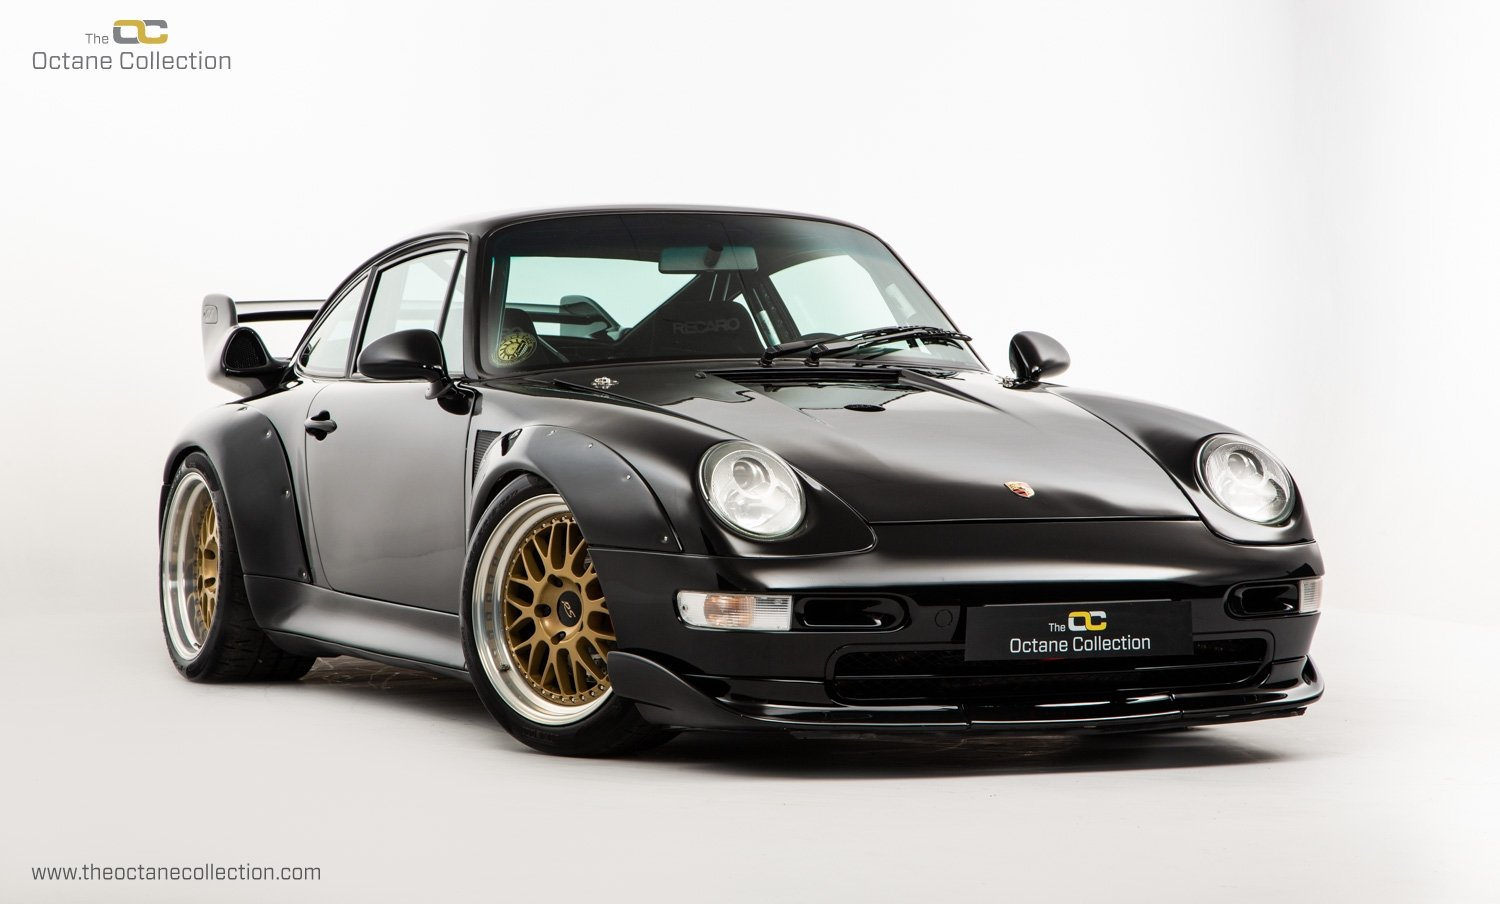 1995 PORSCHE 911 (993) RS 'BLACK SNAKE' For Sale (picture 1 of 23)